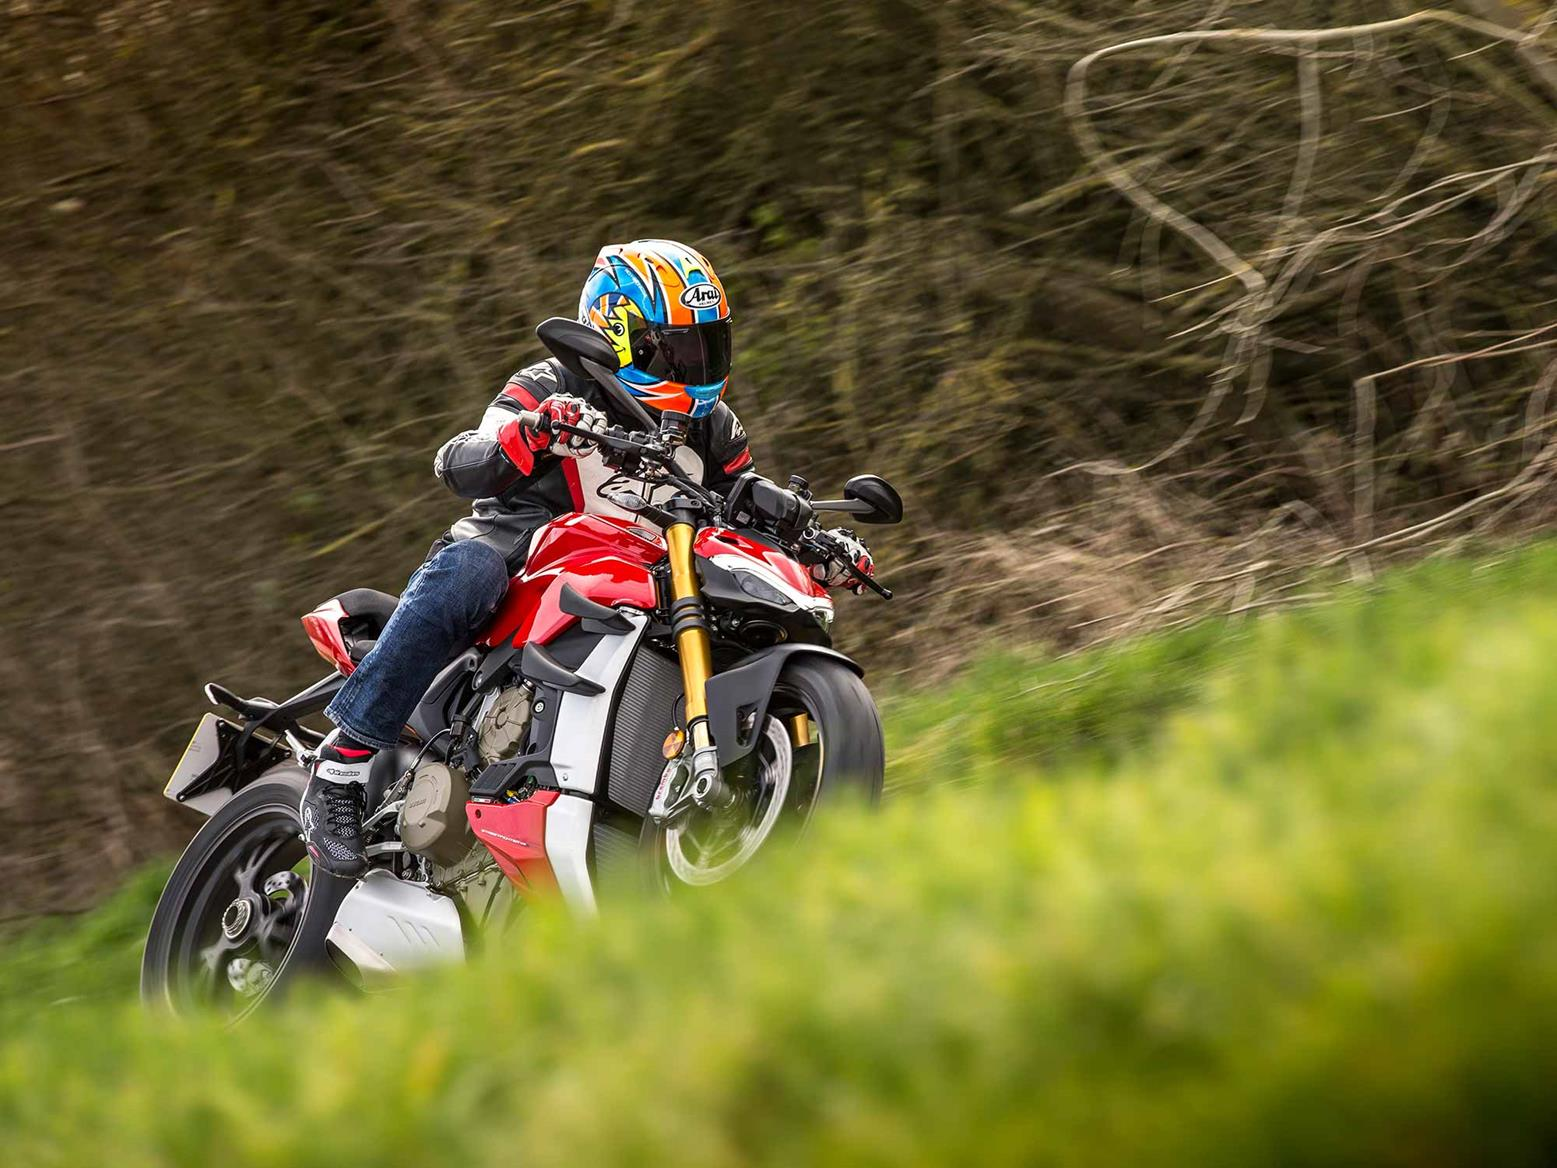 Cornering on the Ducati Streetfighter V4 S